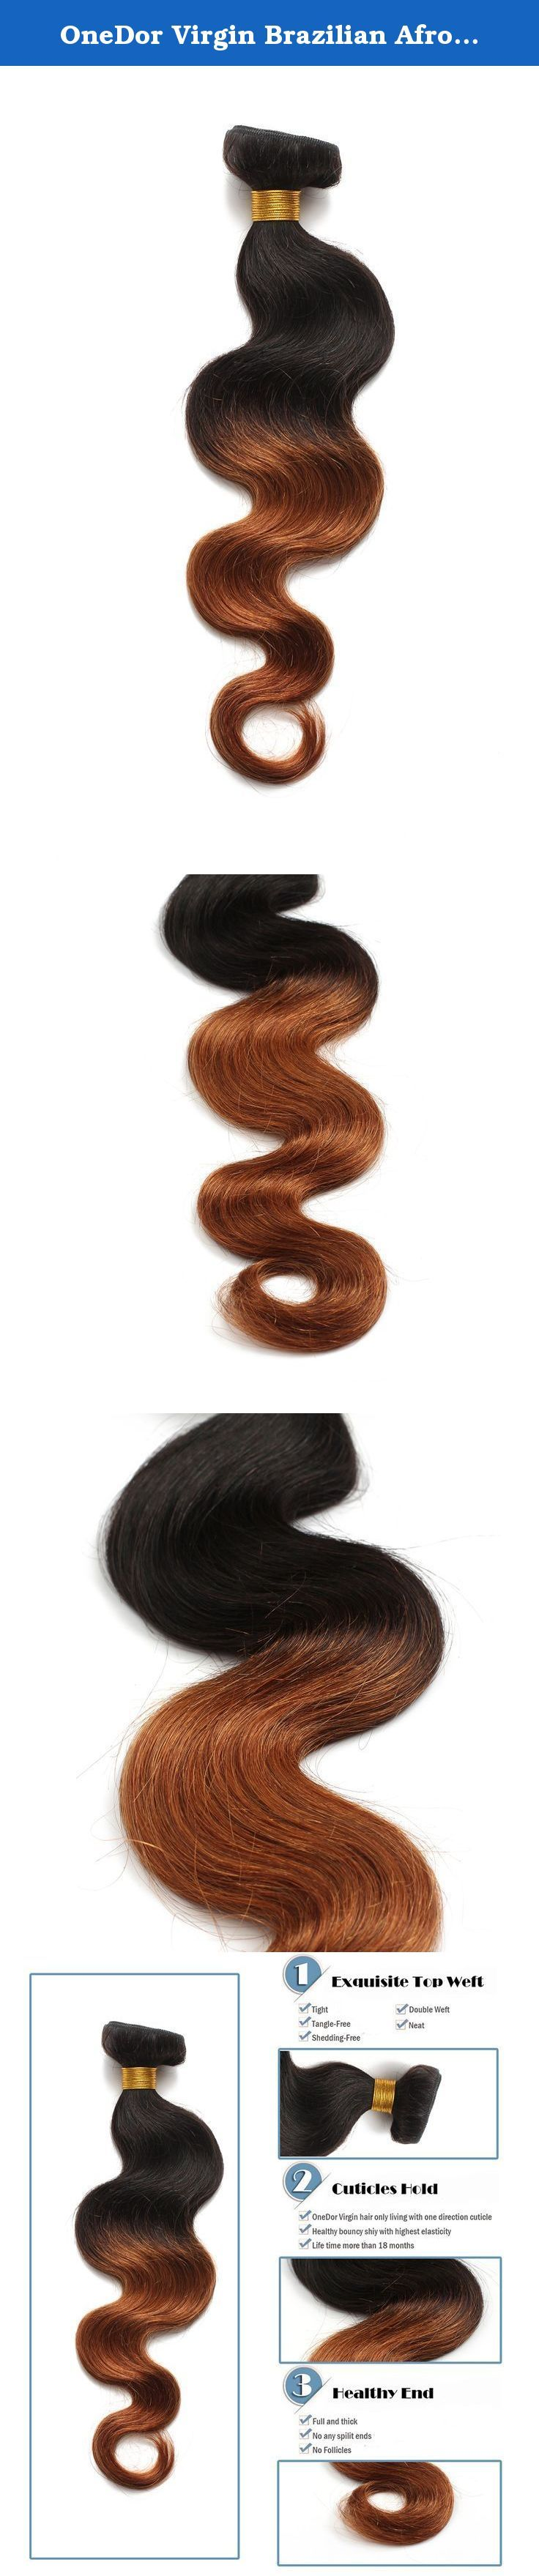 """OneDor Virgin Brazilian Afro Remy Human Hair Extensions Unprocessed Natural Black Hair Weft Hair Weaving 100g/Bundle (1 Bundle 12"""", Body Wave Ombre TwoTone 1B/30#). This OneDor hair is 100% real virgin human hair without processing, no artificial or non-human hair mixed in. This two-tone ombre hair is glamorous and stylish, can be worn in a multitude of styles: the characteristic natural soft wavy pattern, curled, or straight. Each piece weighs 95-100 grams (3.35-3.52 oz). Normally 3…"""